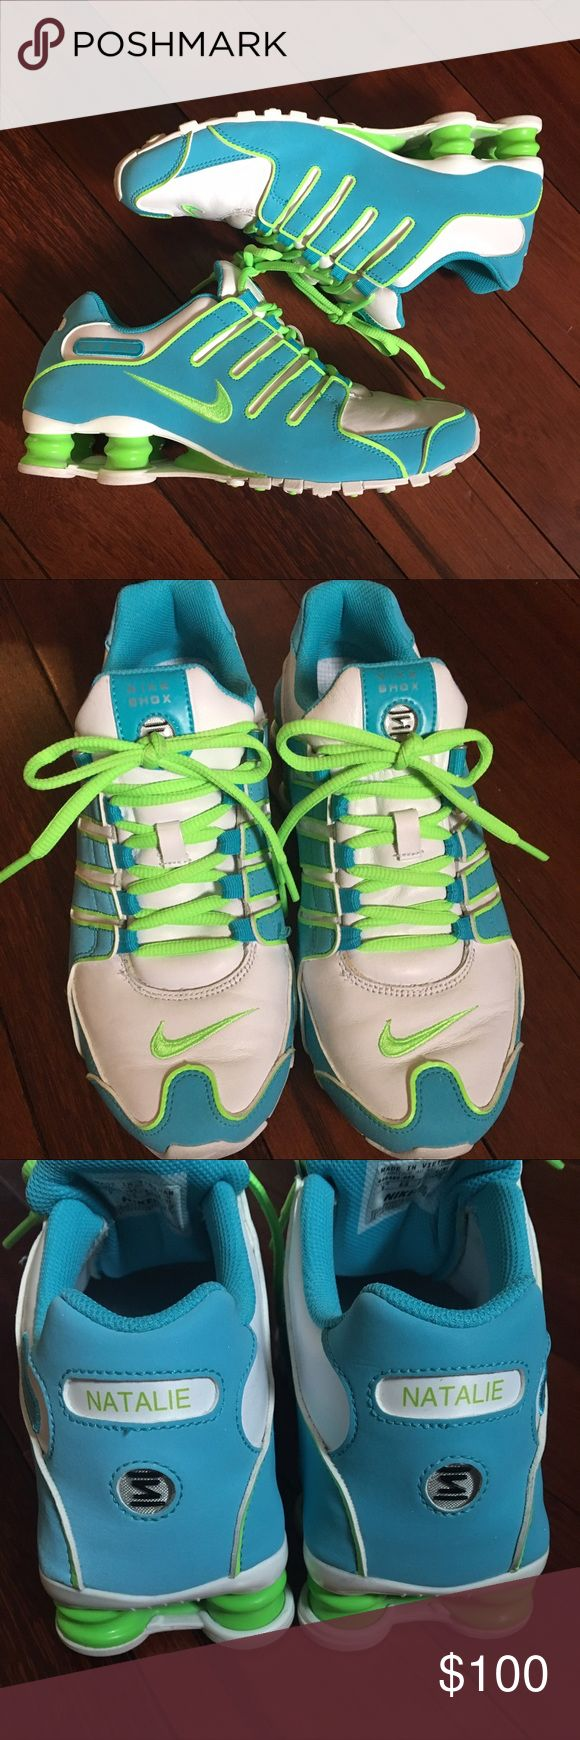 "NWOT Customized Nike Shox tennis shoes Brand new condition!! Worn once! Women's customized Nike iD Shox tennis shoes, size 9! Has blue, lime green and white detailing. Only flaw is that since these are Nike iD's, they say ""Natalie"" on the back of the shoe. So if your name is natalie, or someone you know, these would be perfect! You could always have the name removed as well! Willing to negotiate price, so make offers:) ALSO bundle 2 or more items and get 10% off!😊 Nike Shoes Athletic Shoes"